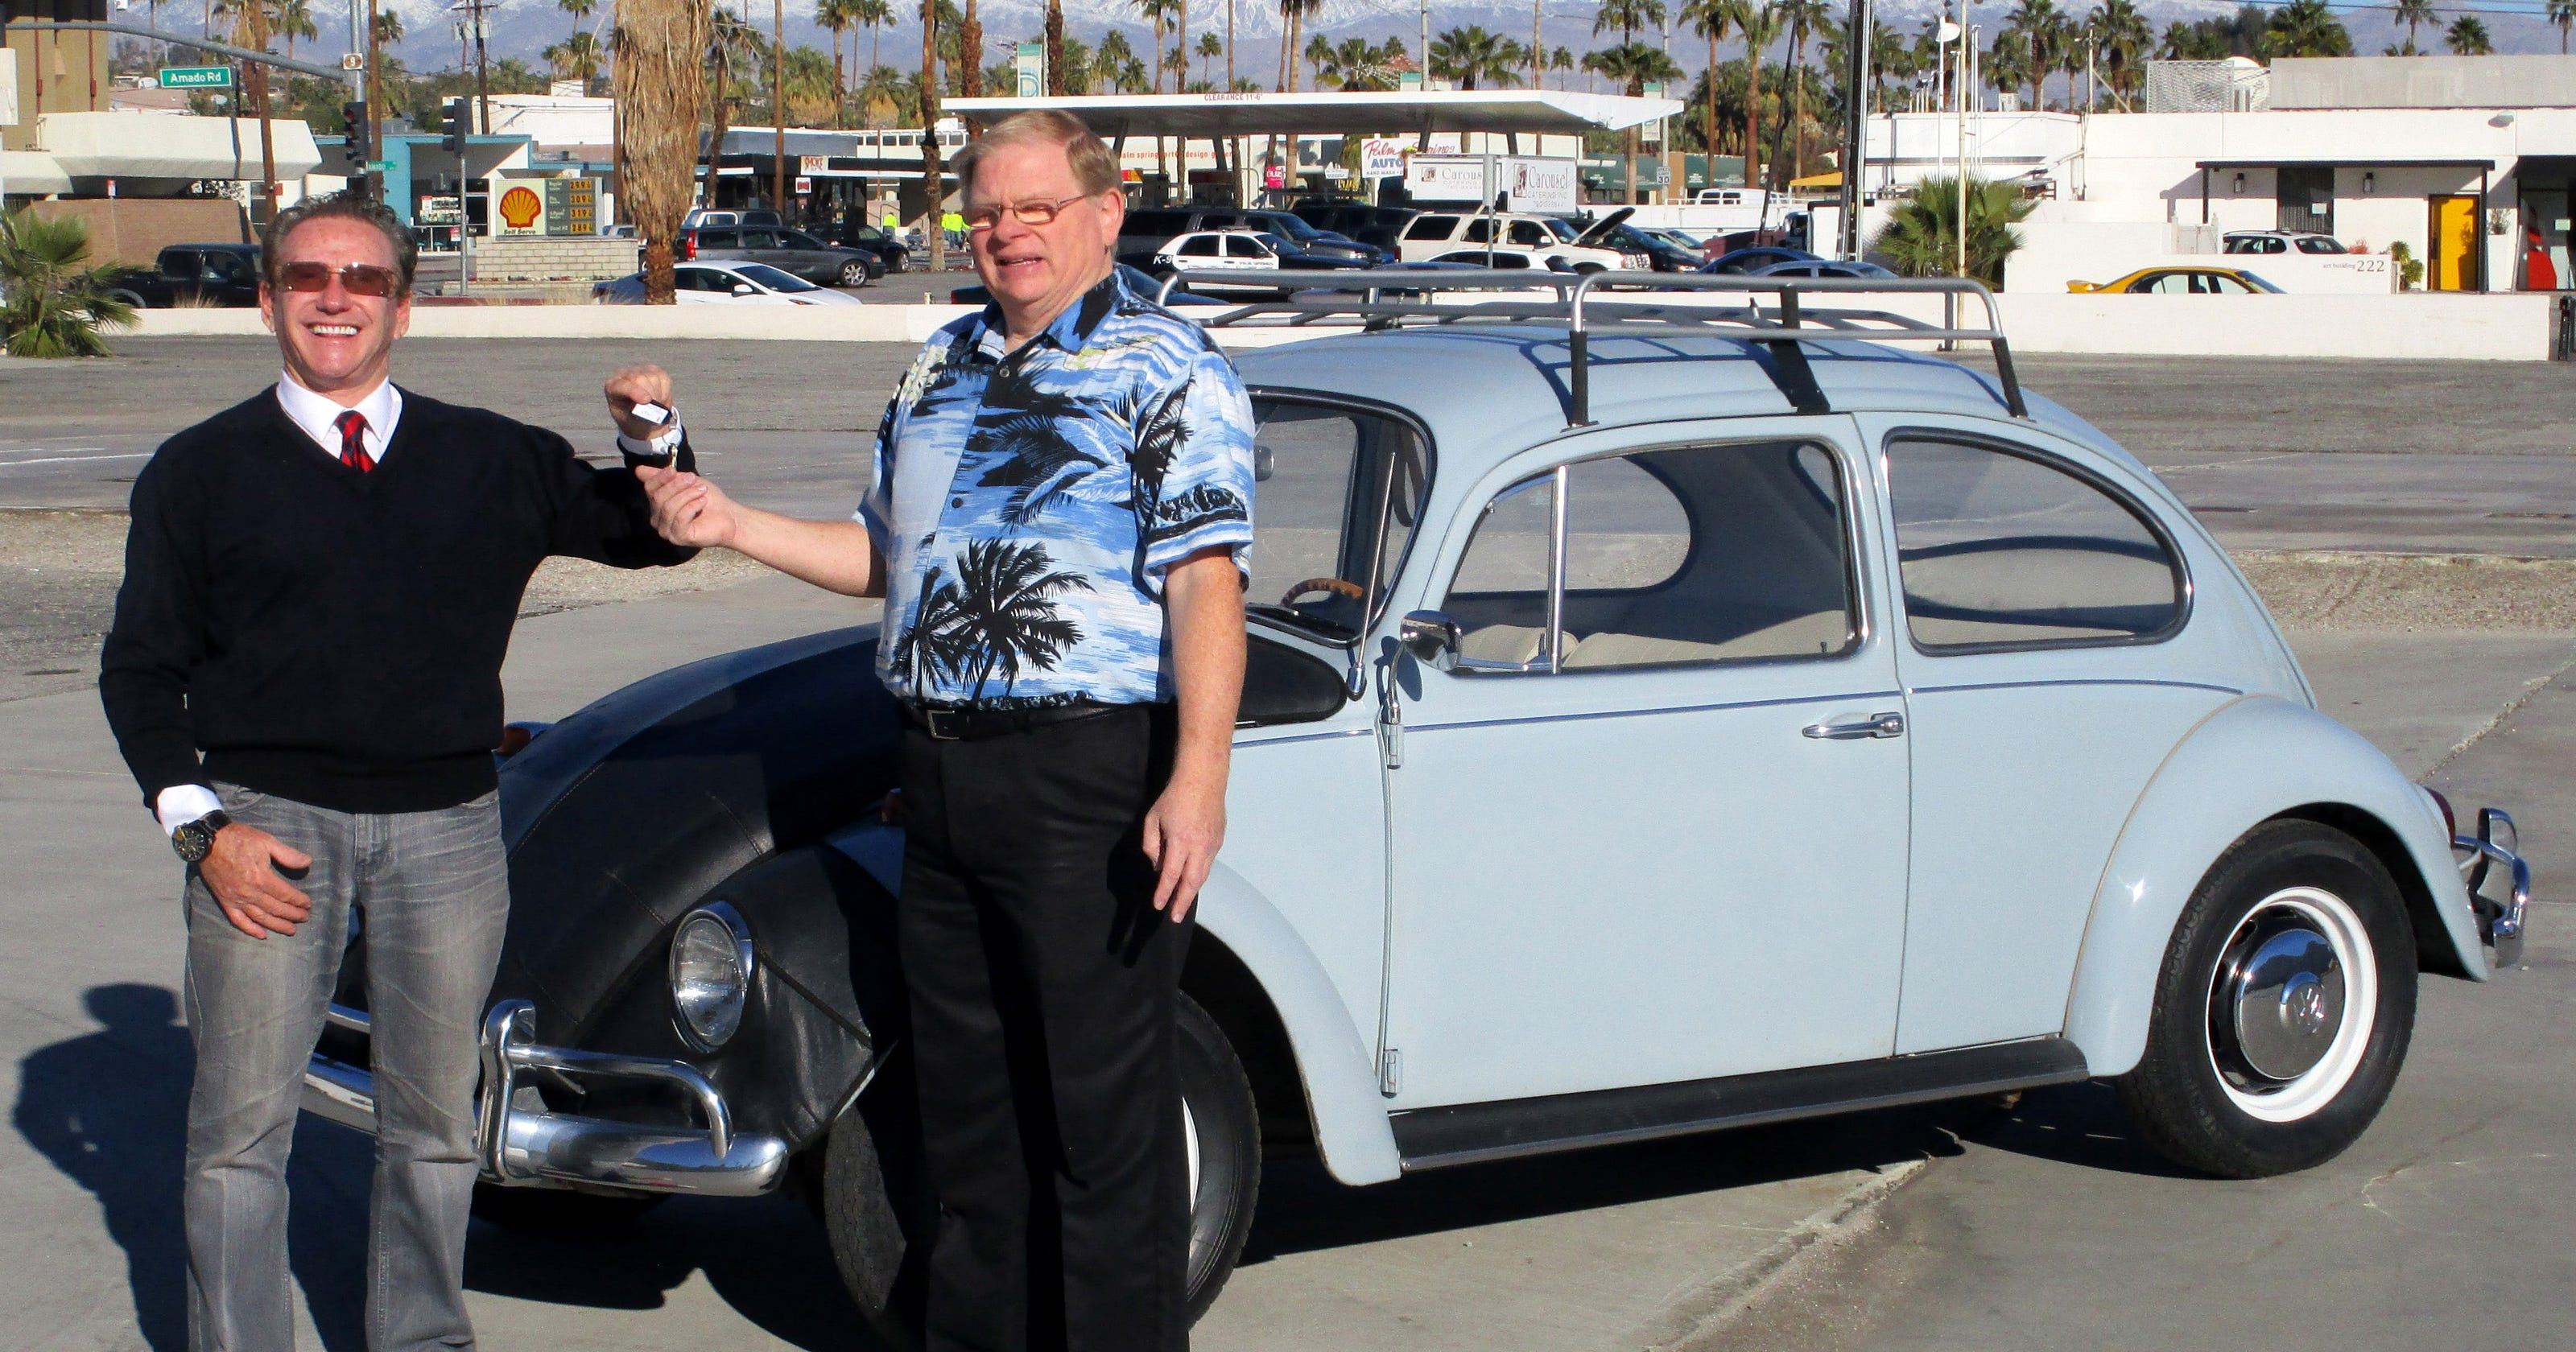 Mccormick Car Auction Changes Lanes In Palm Springs